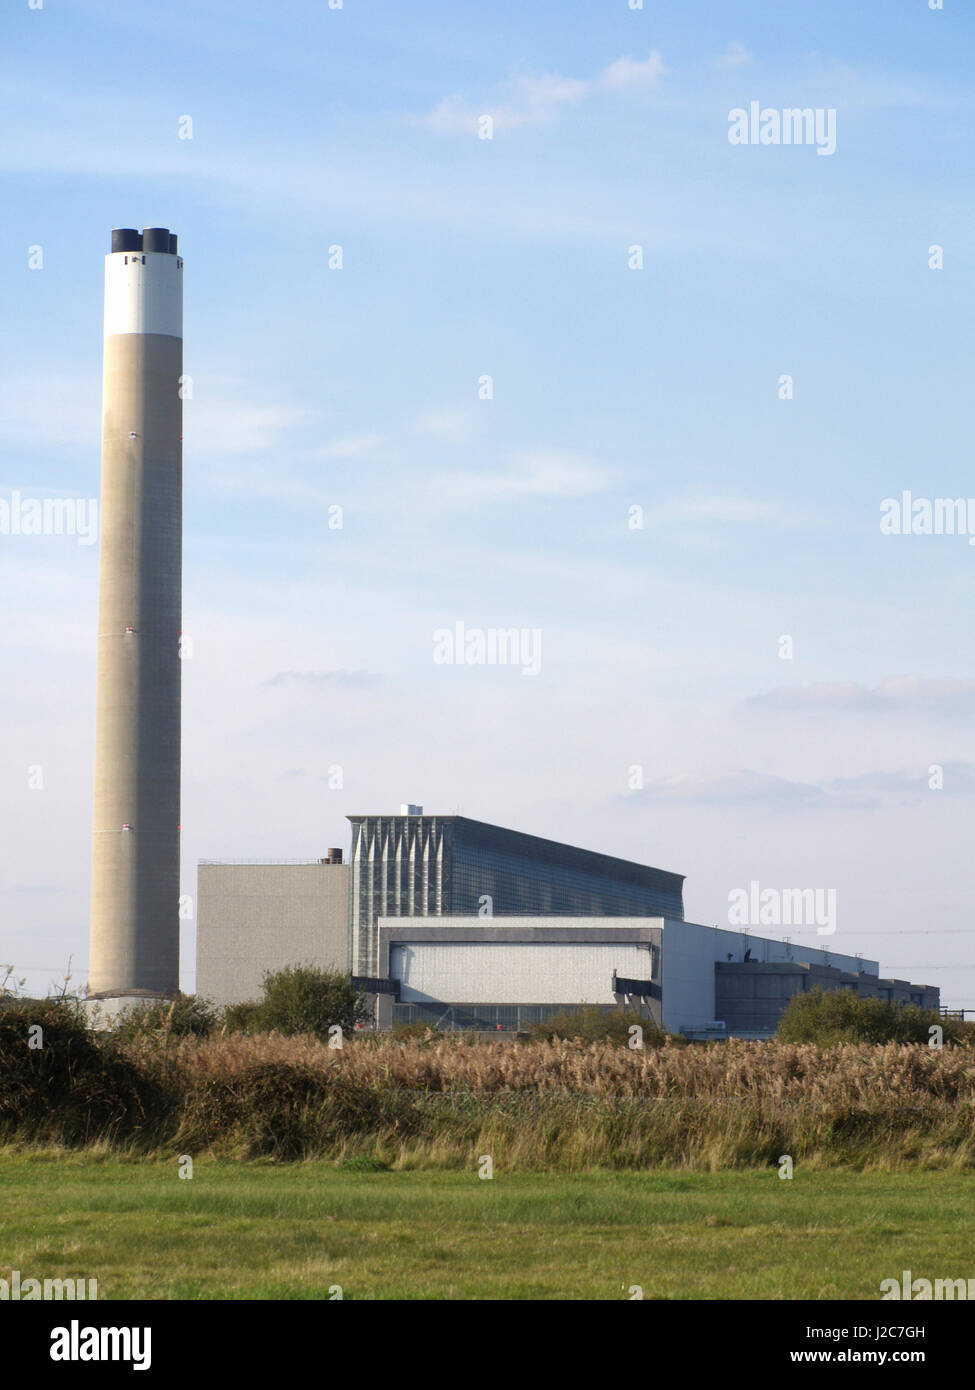 Fawley Power Station, Southampton, Hampshire, England, UK, film location for Star Wars, Red Cup Stock Photo